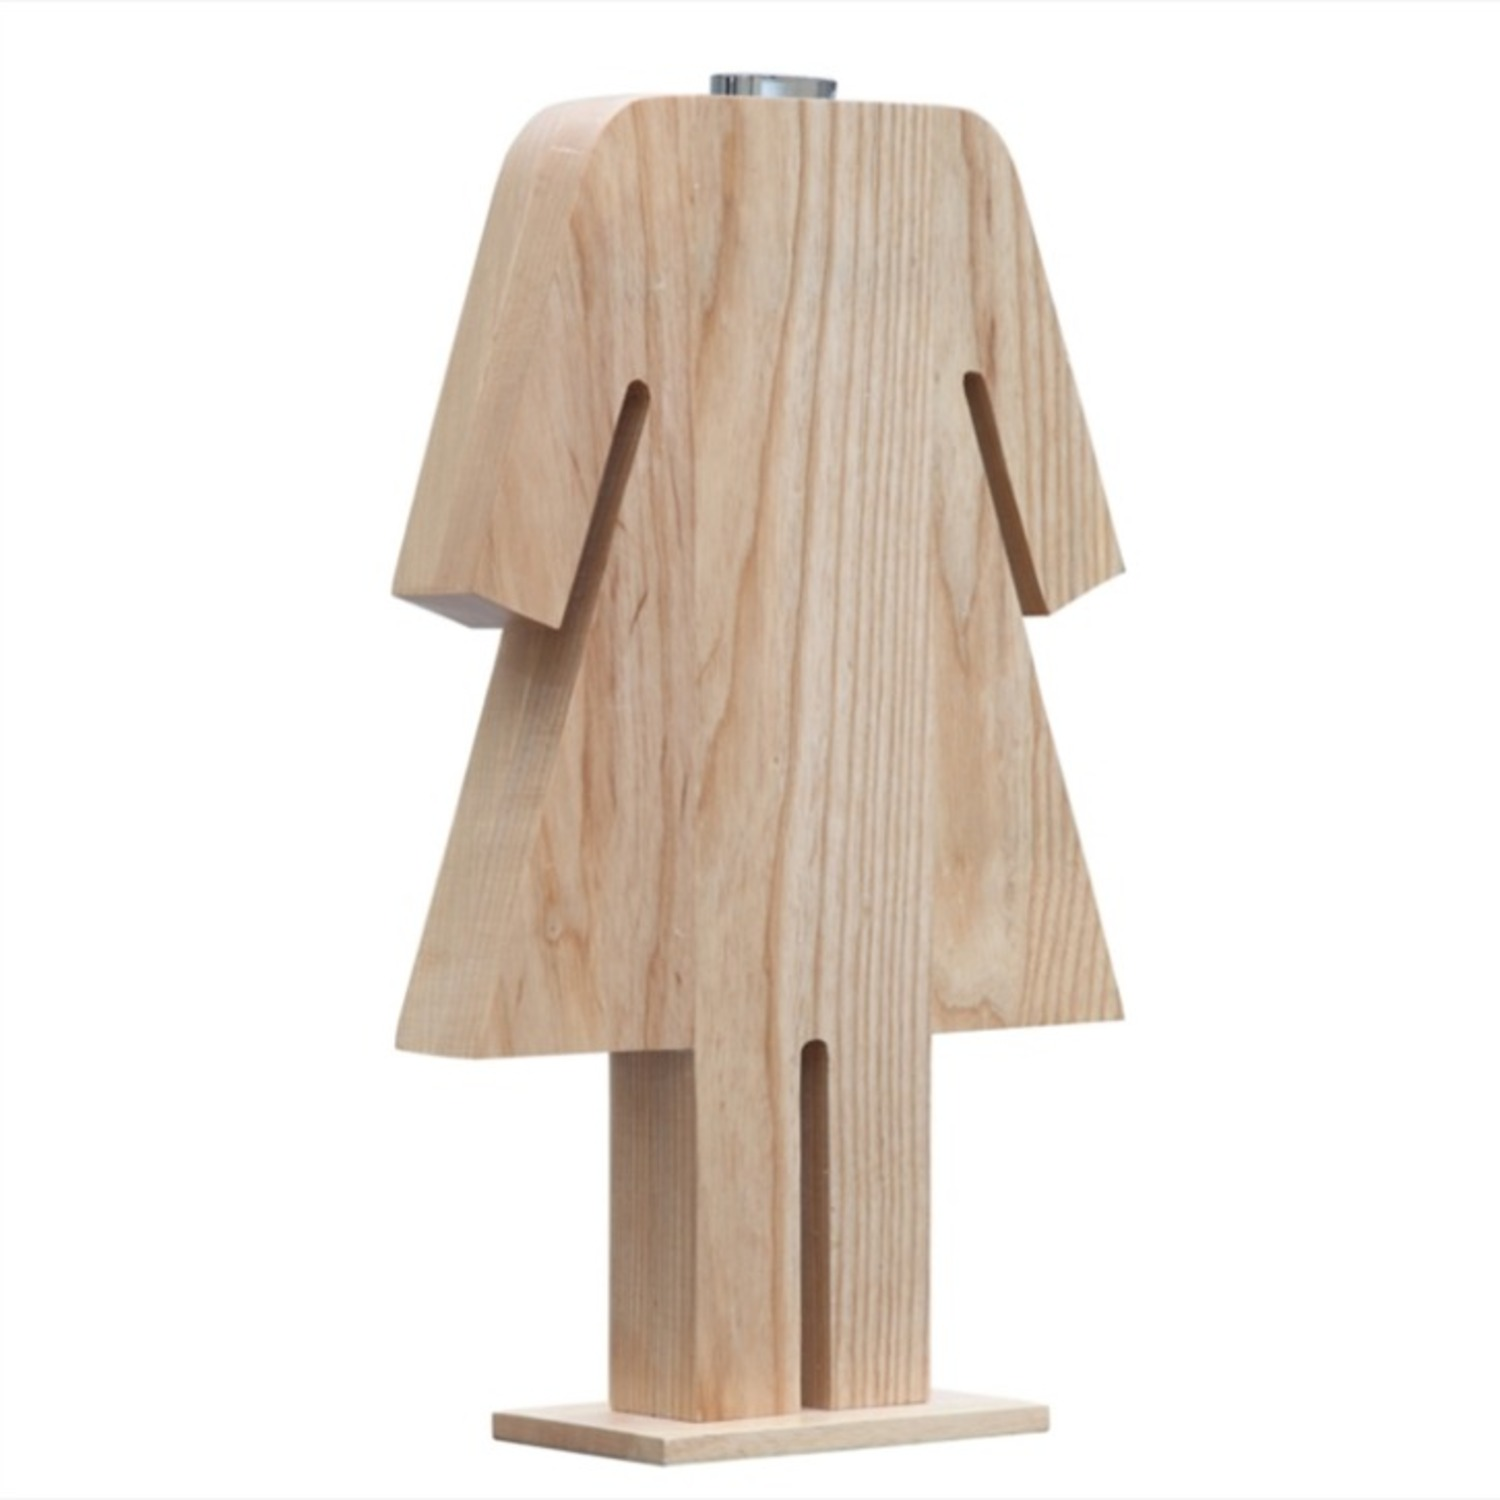 Table Lamp In Natural Wood W/ Female Person Design - image-0